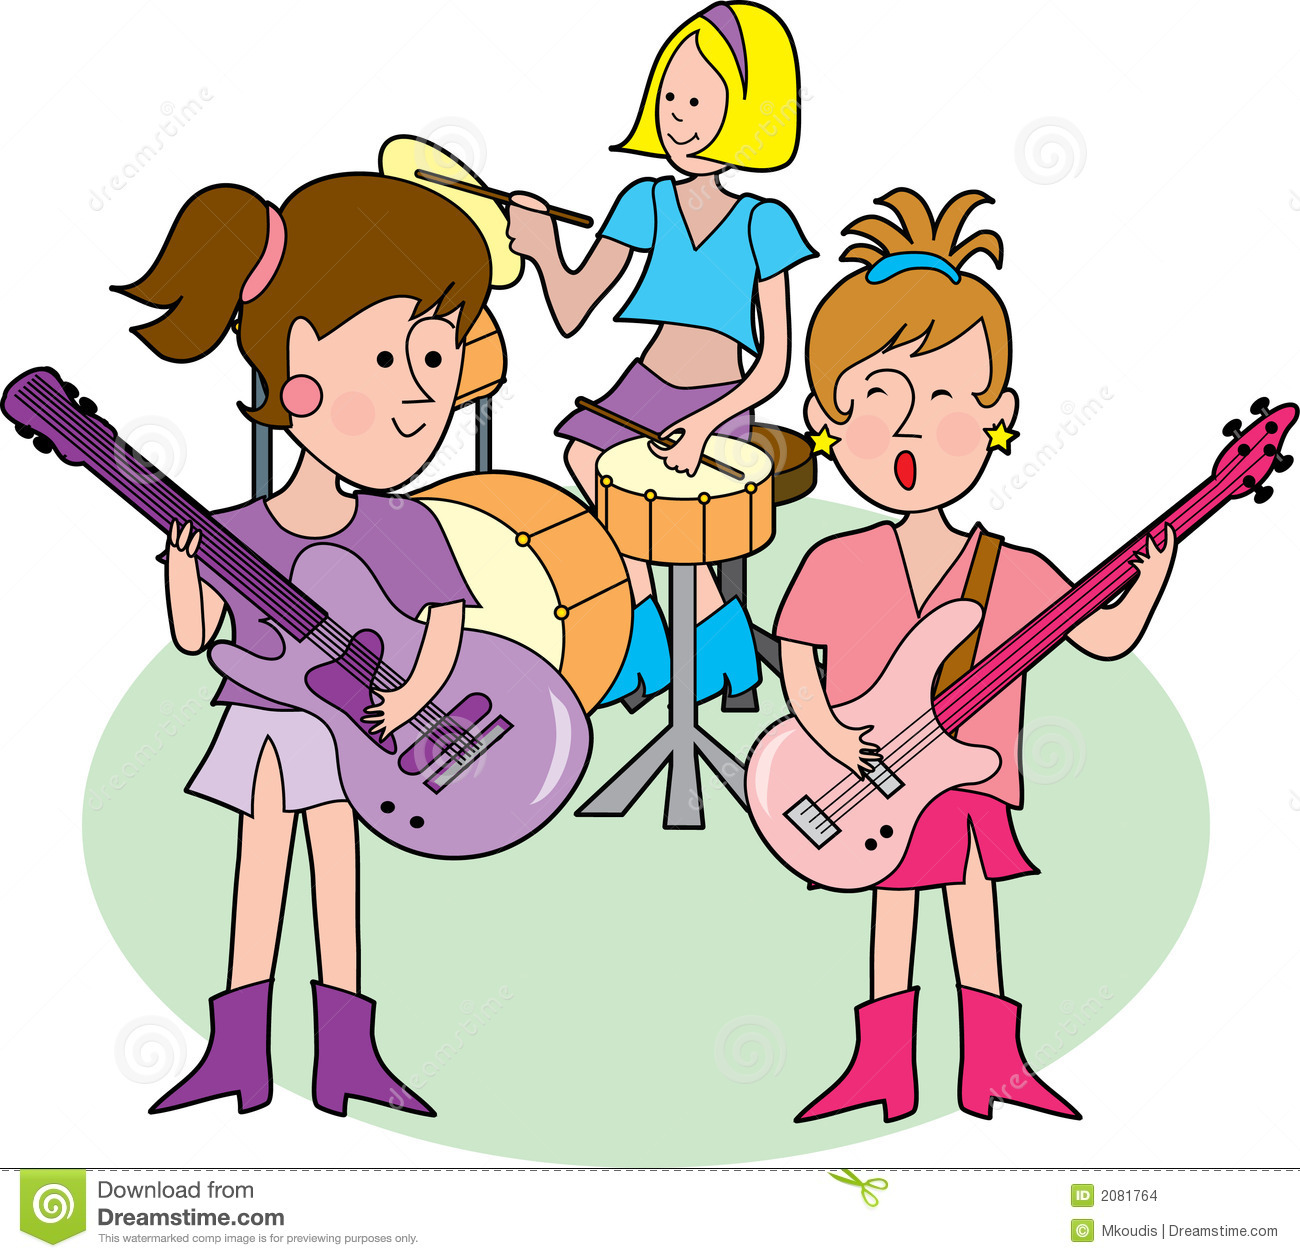 clipart of music bands - photo #49